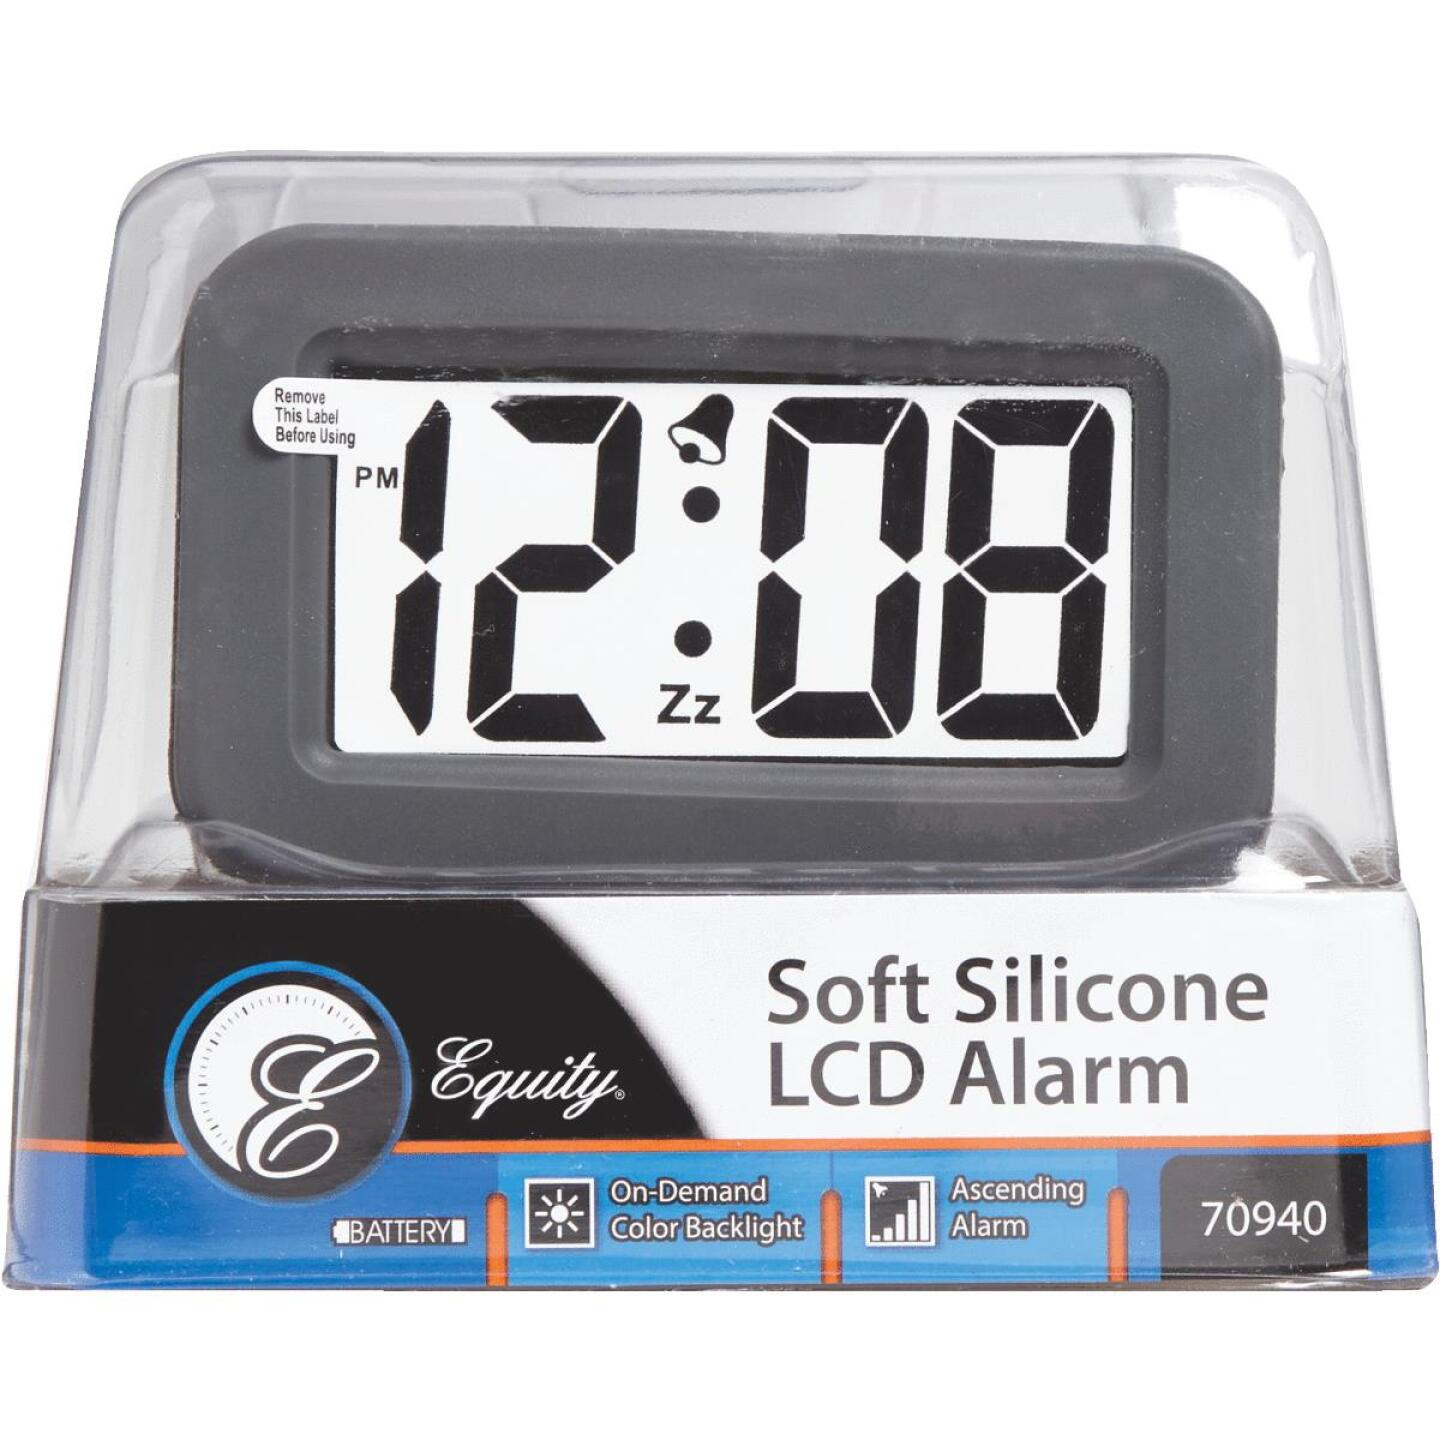 La Crosse Technology Silicon LCD Battery Operated Alarm Clock Image 3